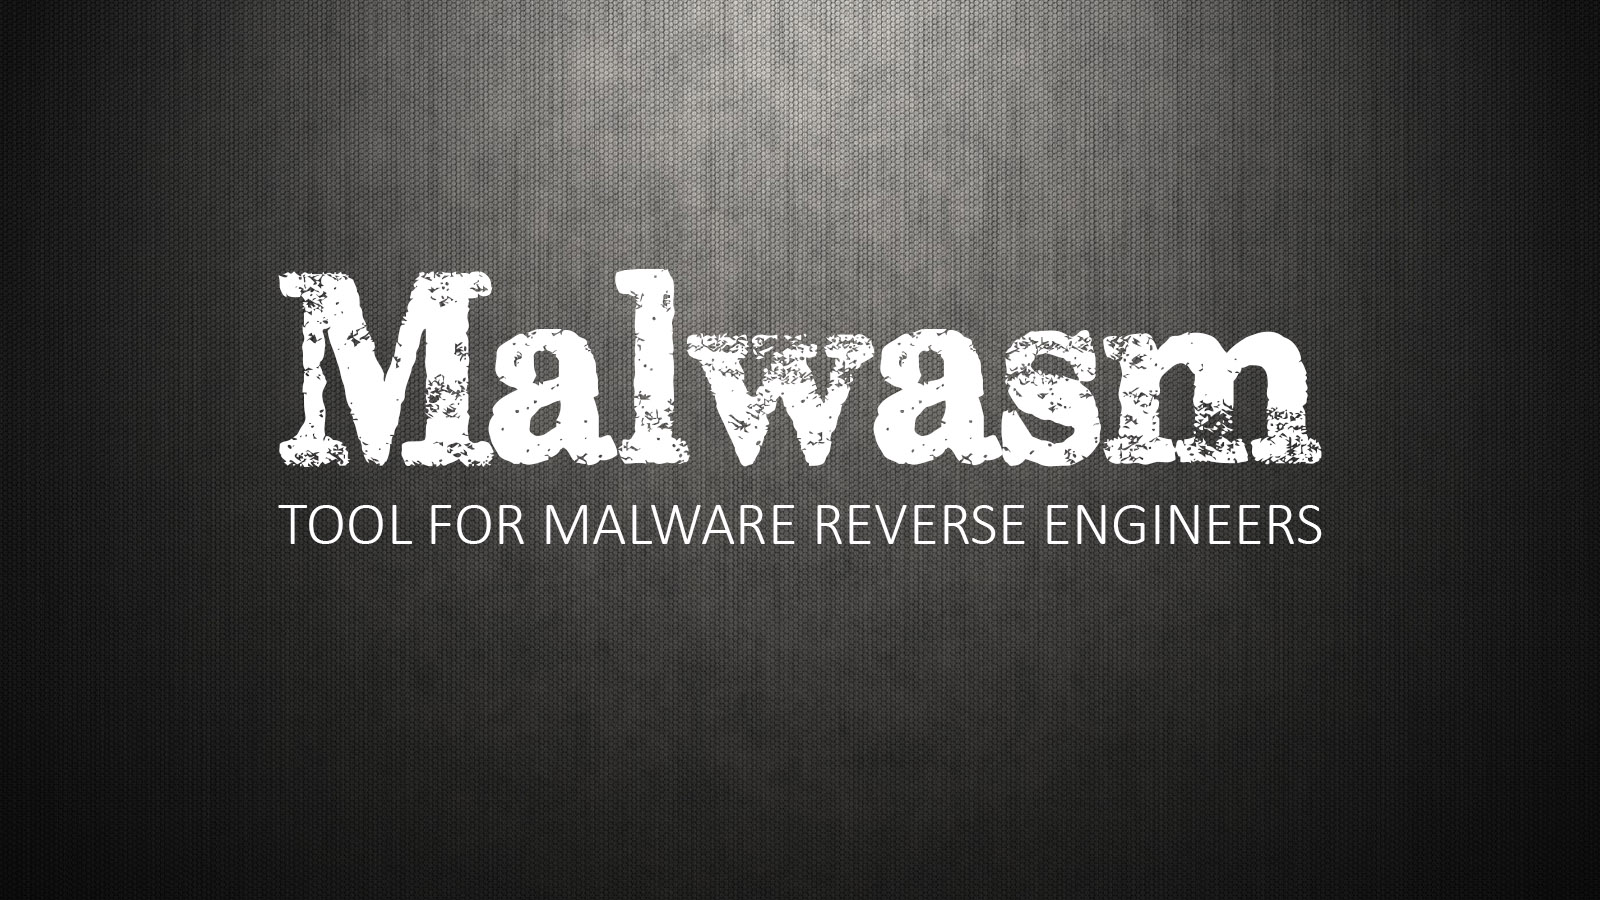 Malwasm - Tool For Malware Reverse Engineers